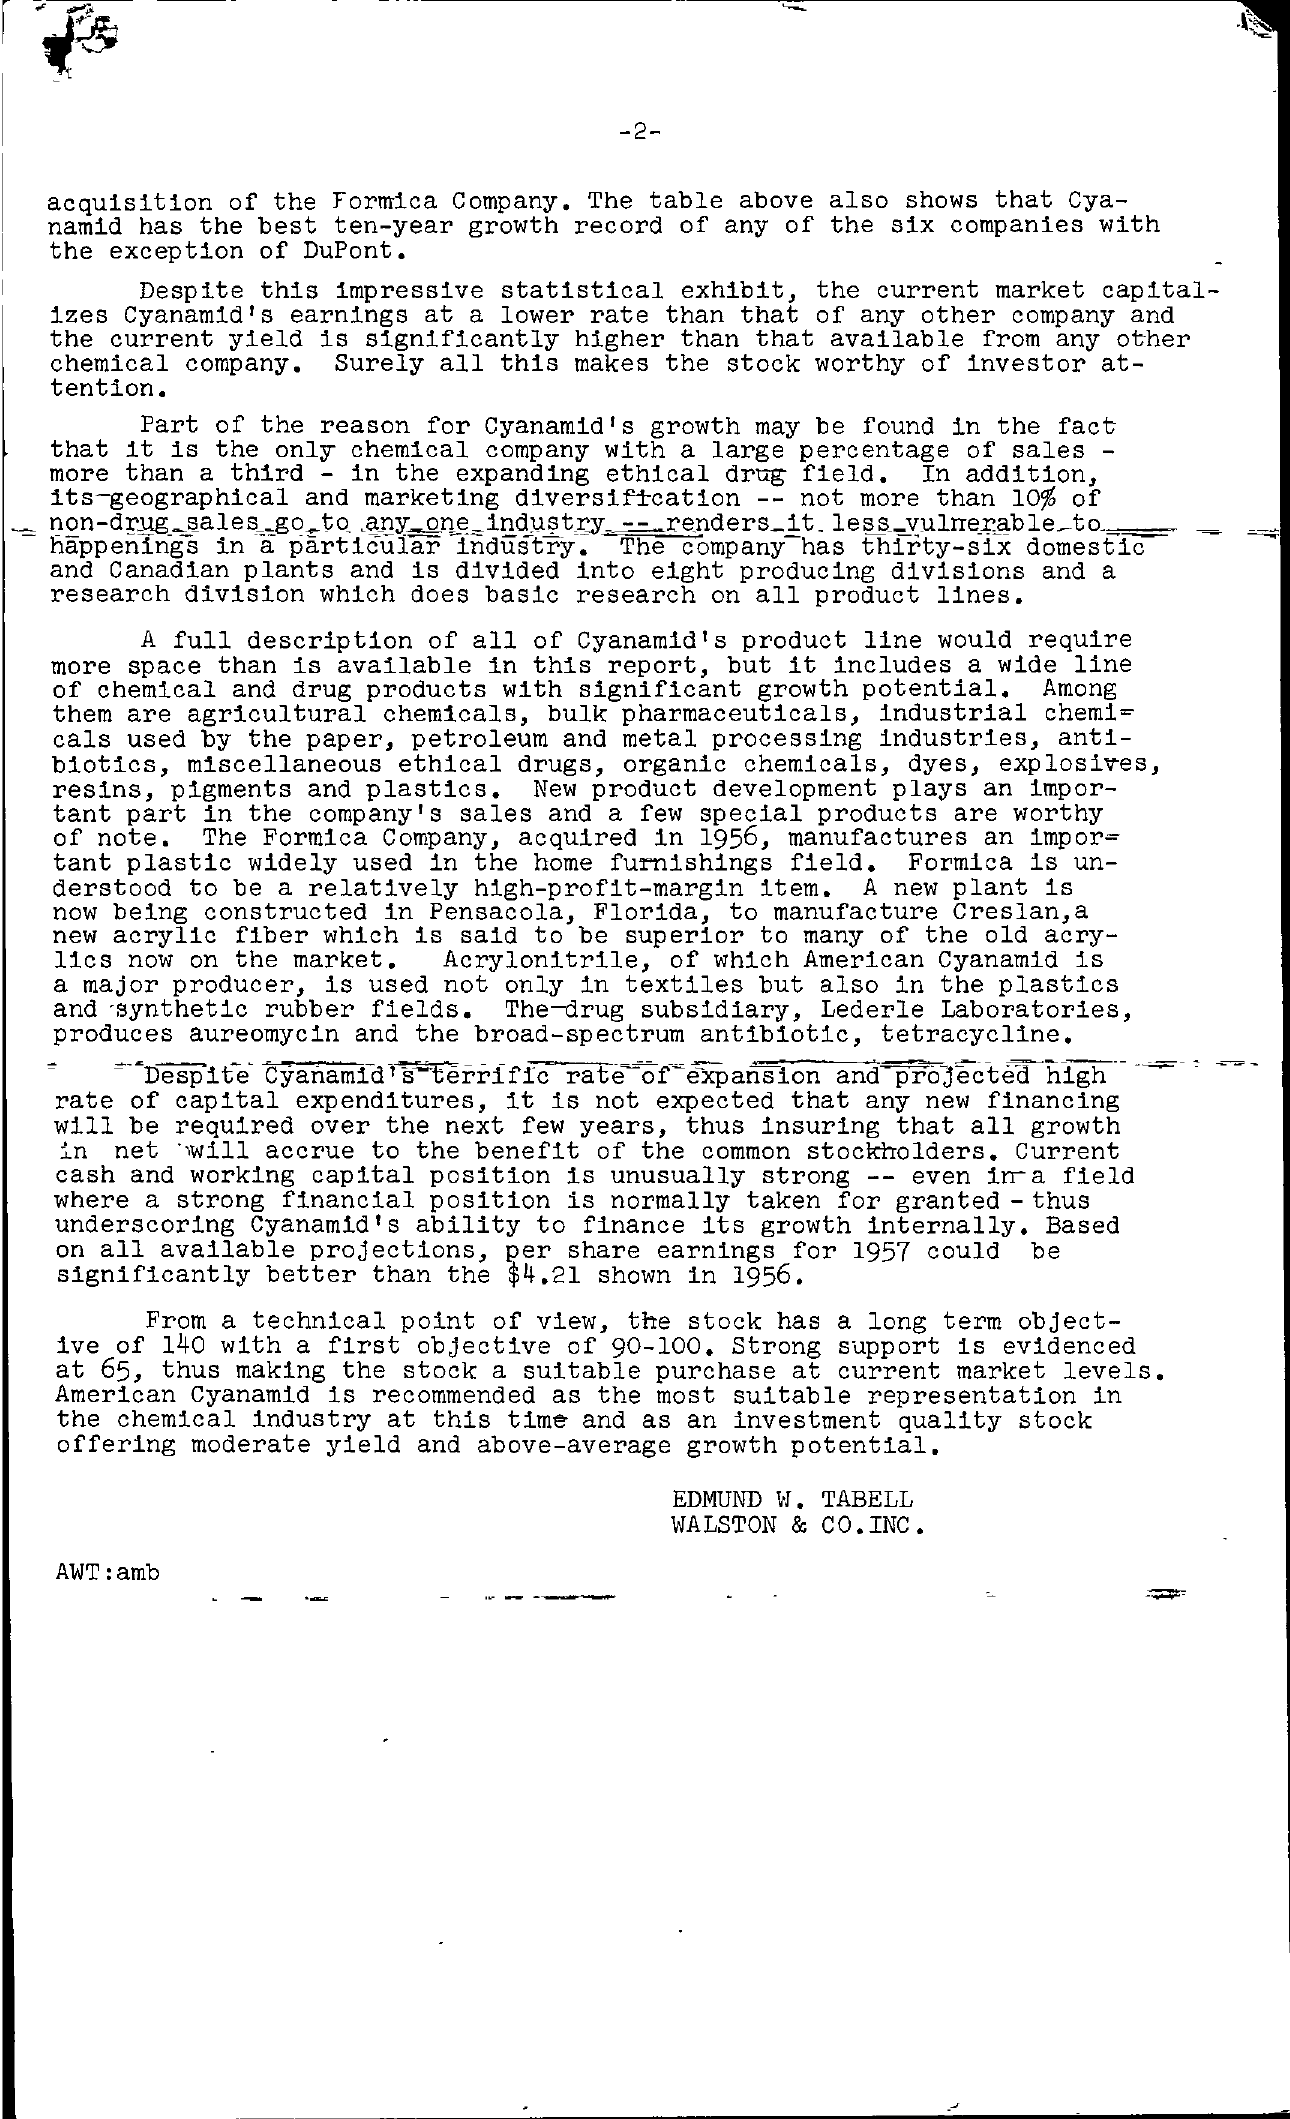 Tabell's Market Letter - March 01, 1957 page 2